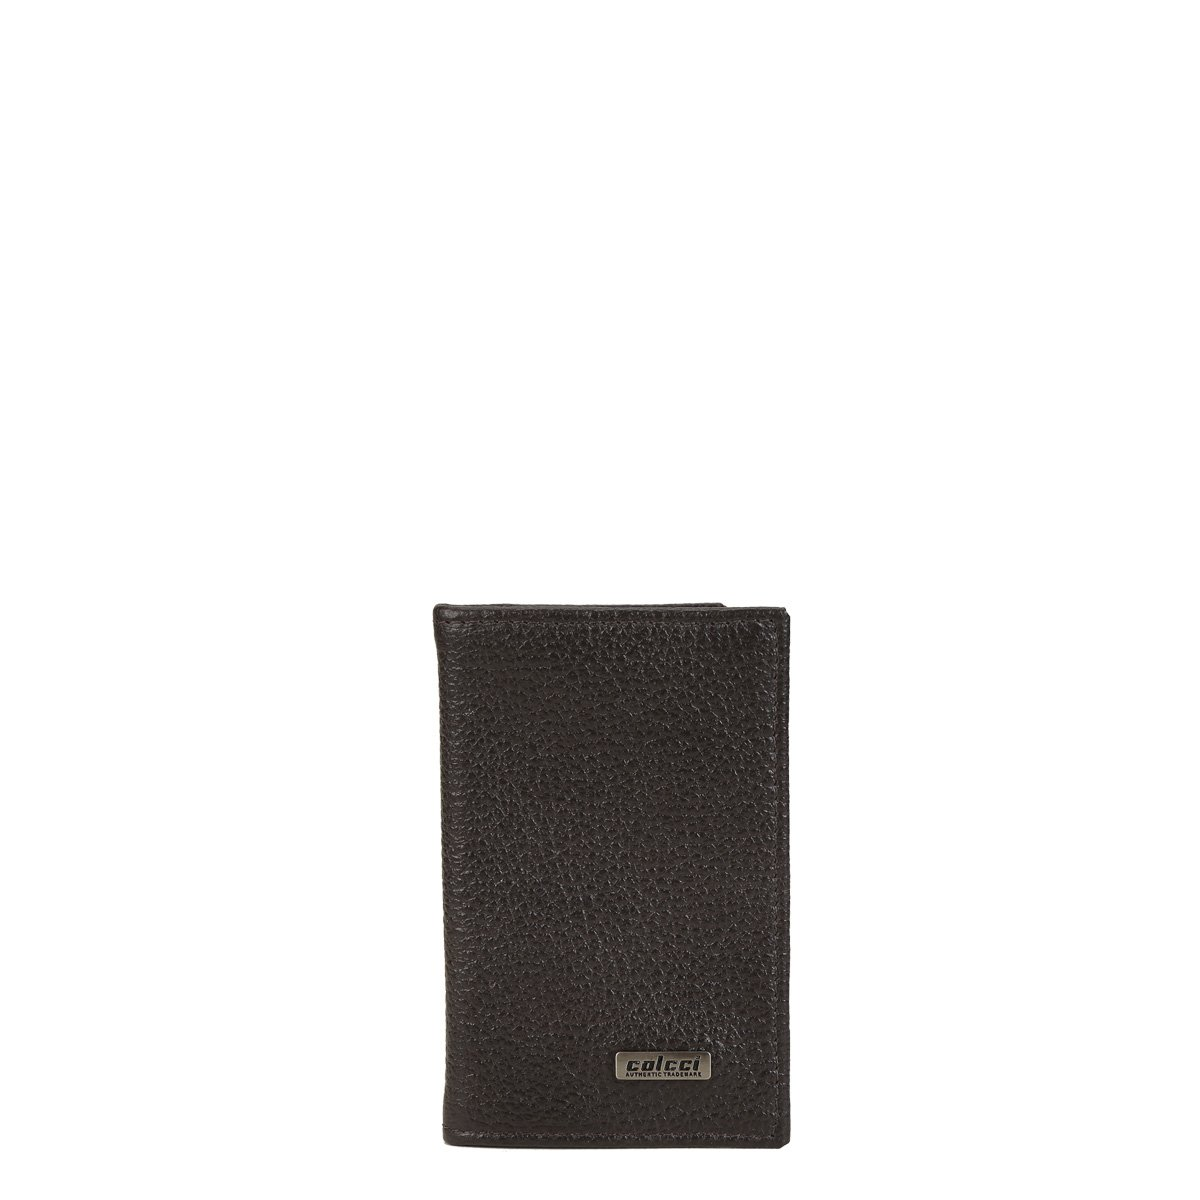 00425a804 Carteira Couro Colcci Must Have Masculina | Netshoes